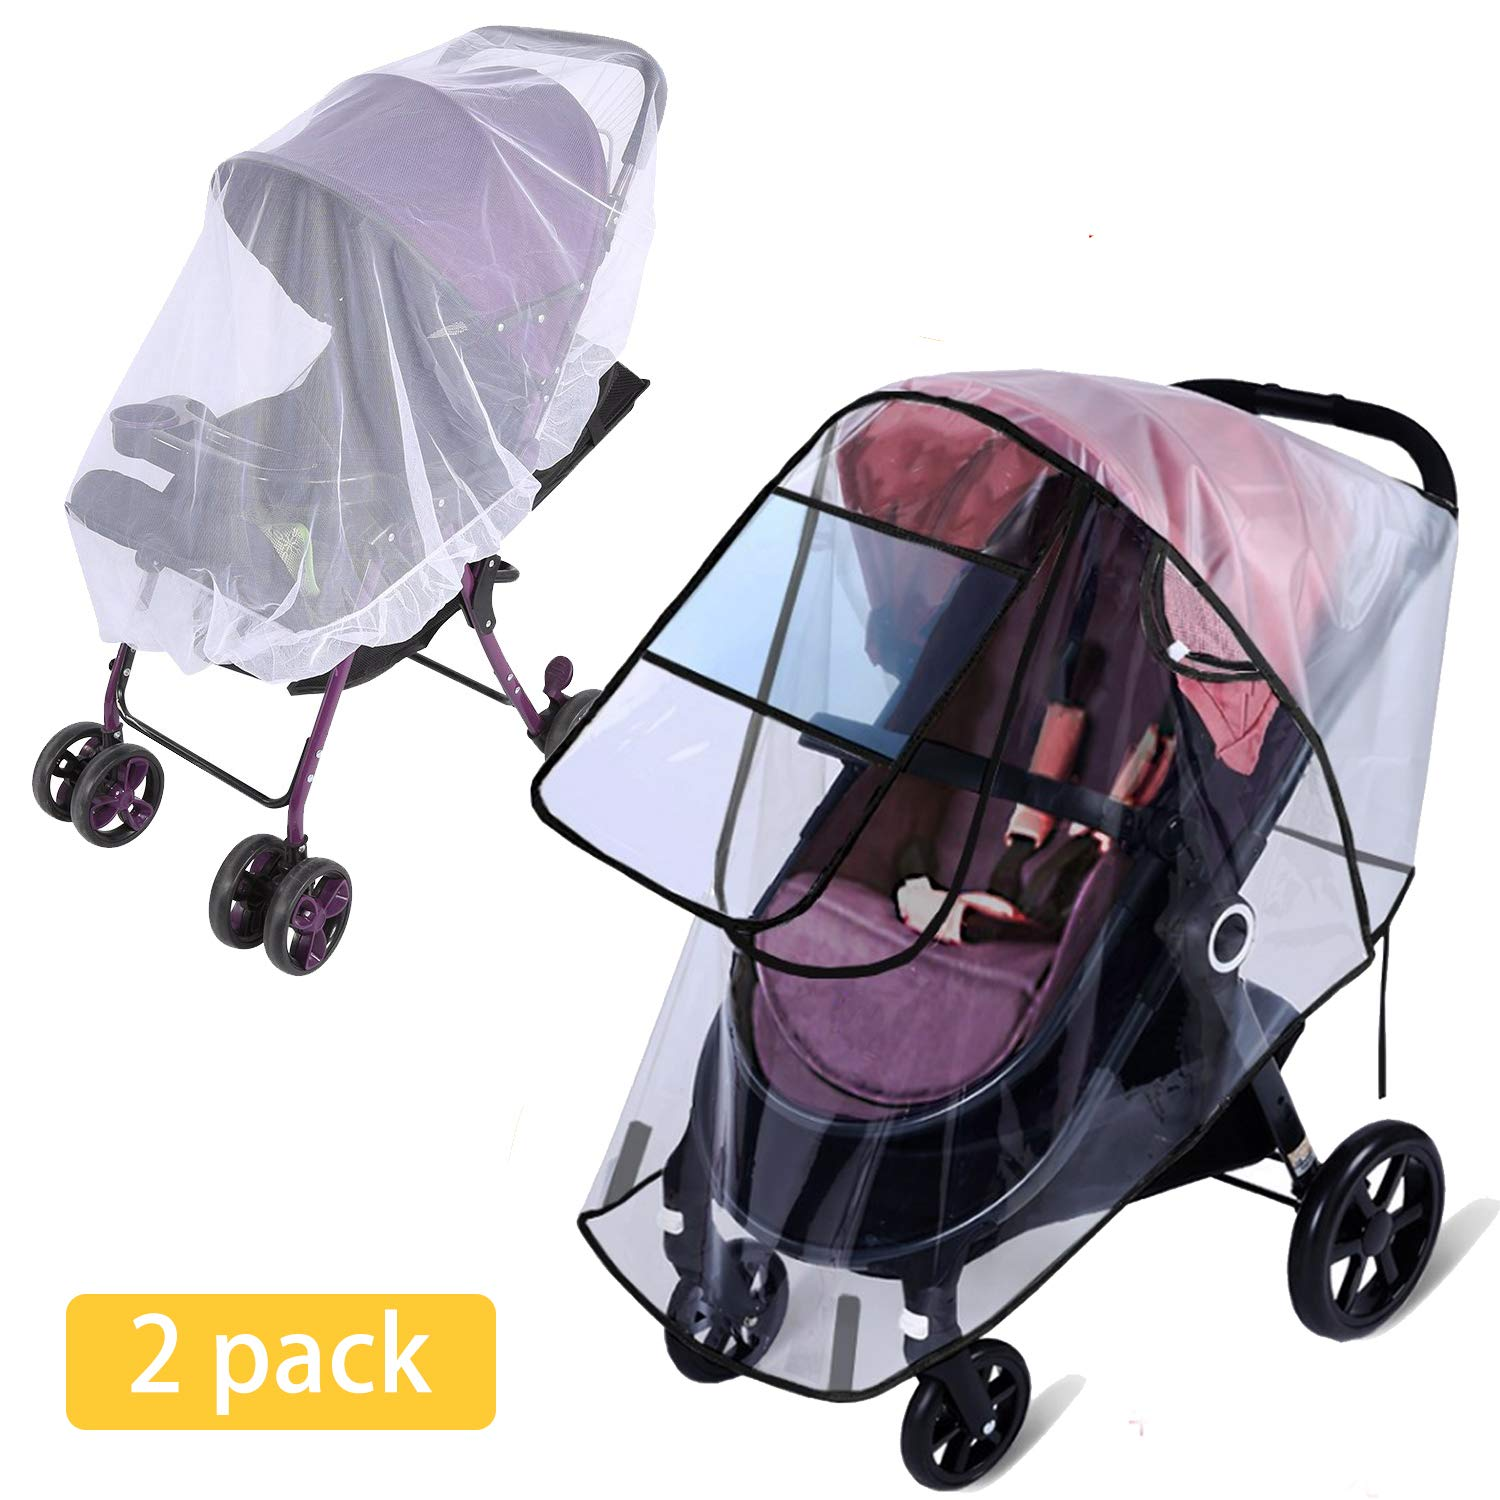 Rain Cover for Stroller - Mosquito Net(2-Piece Set), Apsung Universal Baby Travel Stroller Rain Cover Waterproof, Windproof Protection, Outdoor Use with Air Holes-Transparent by Apsung